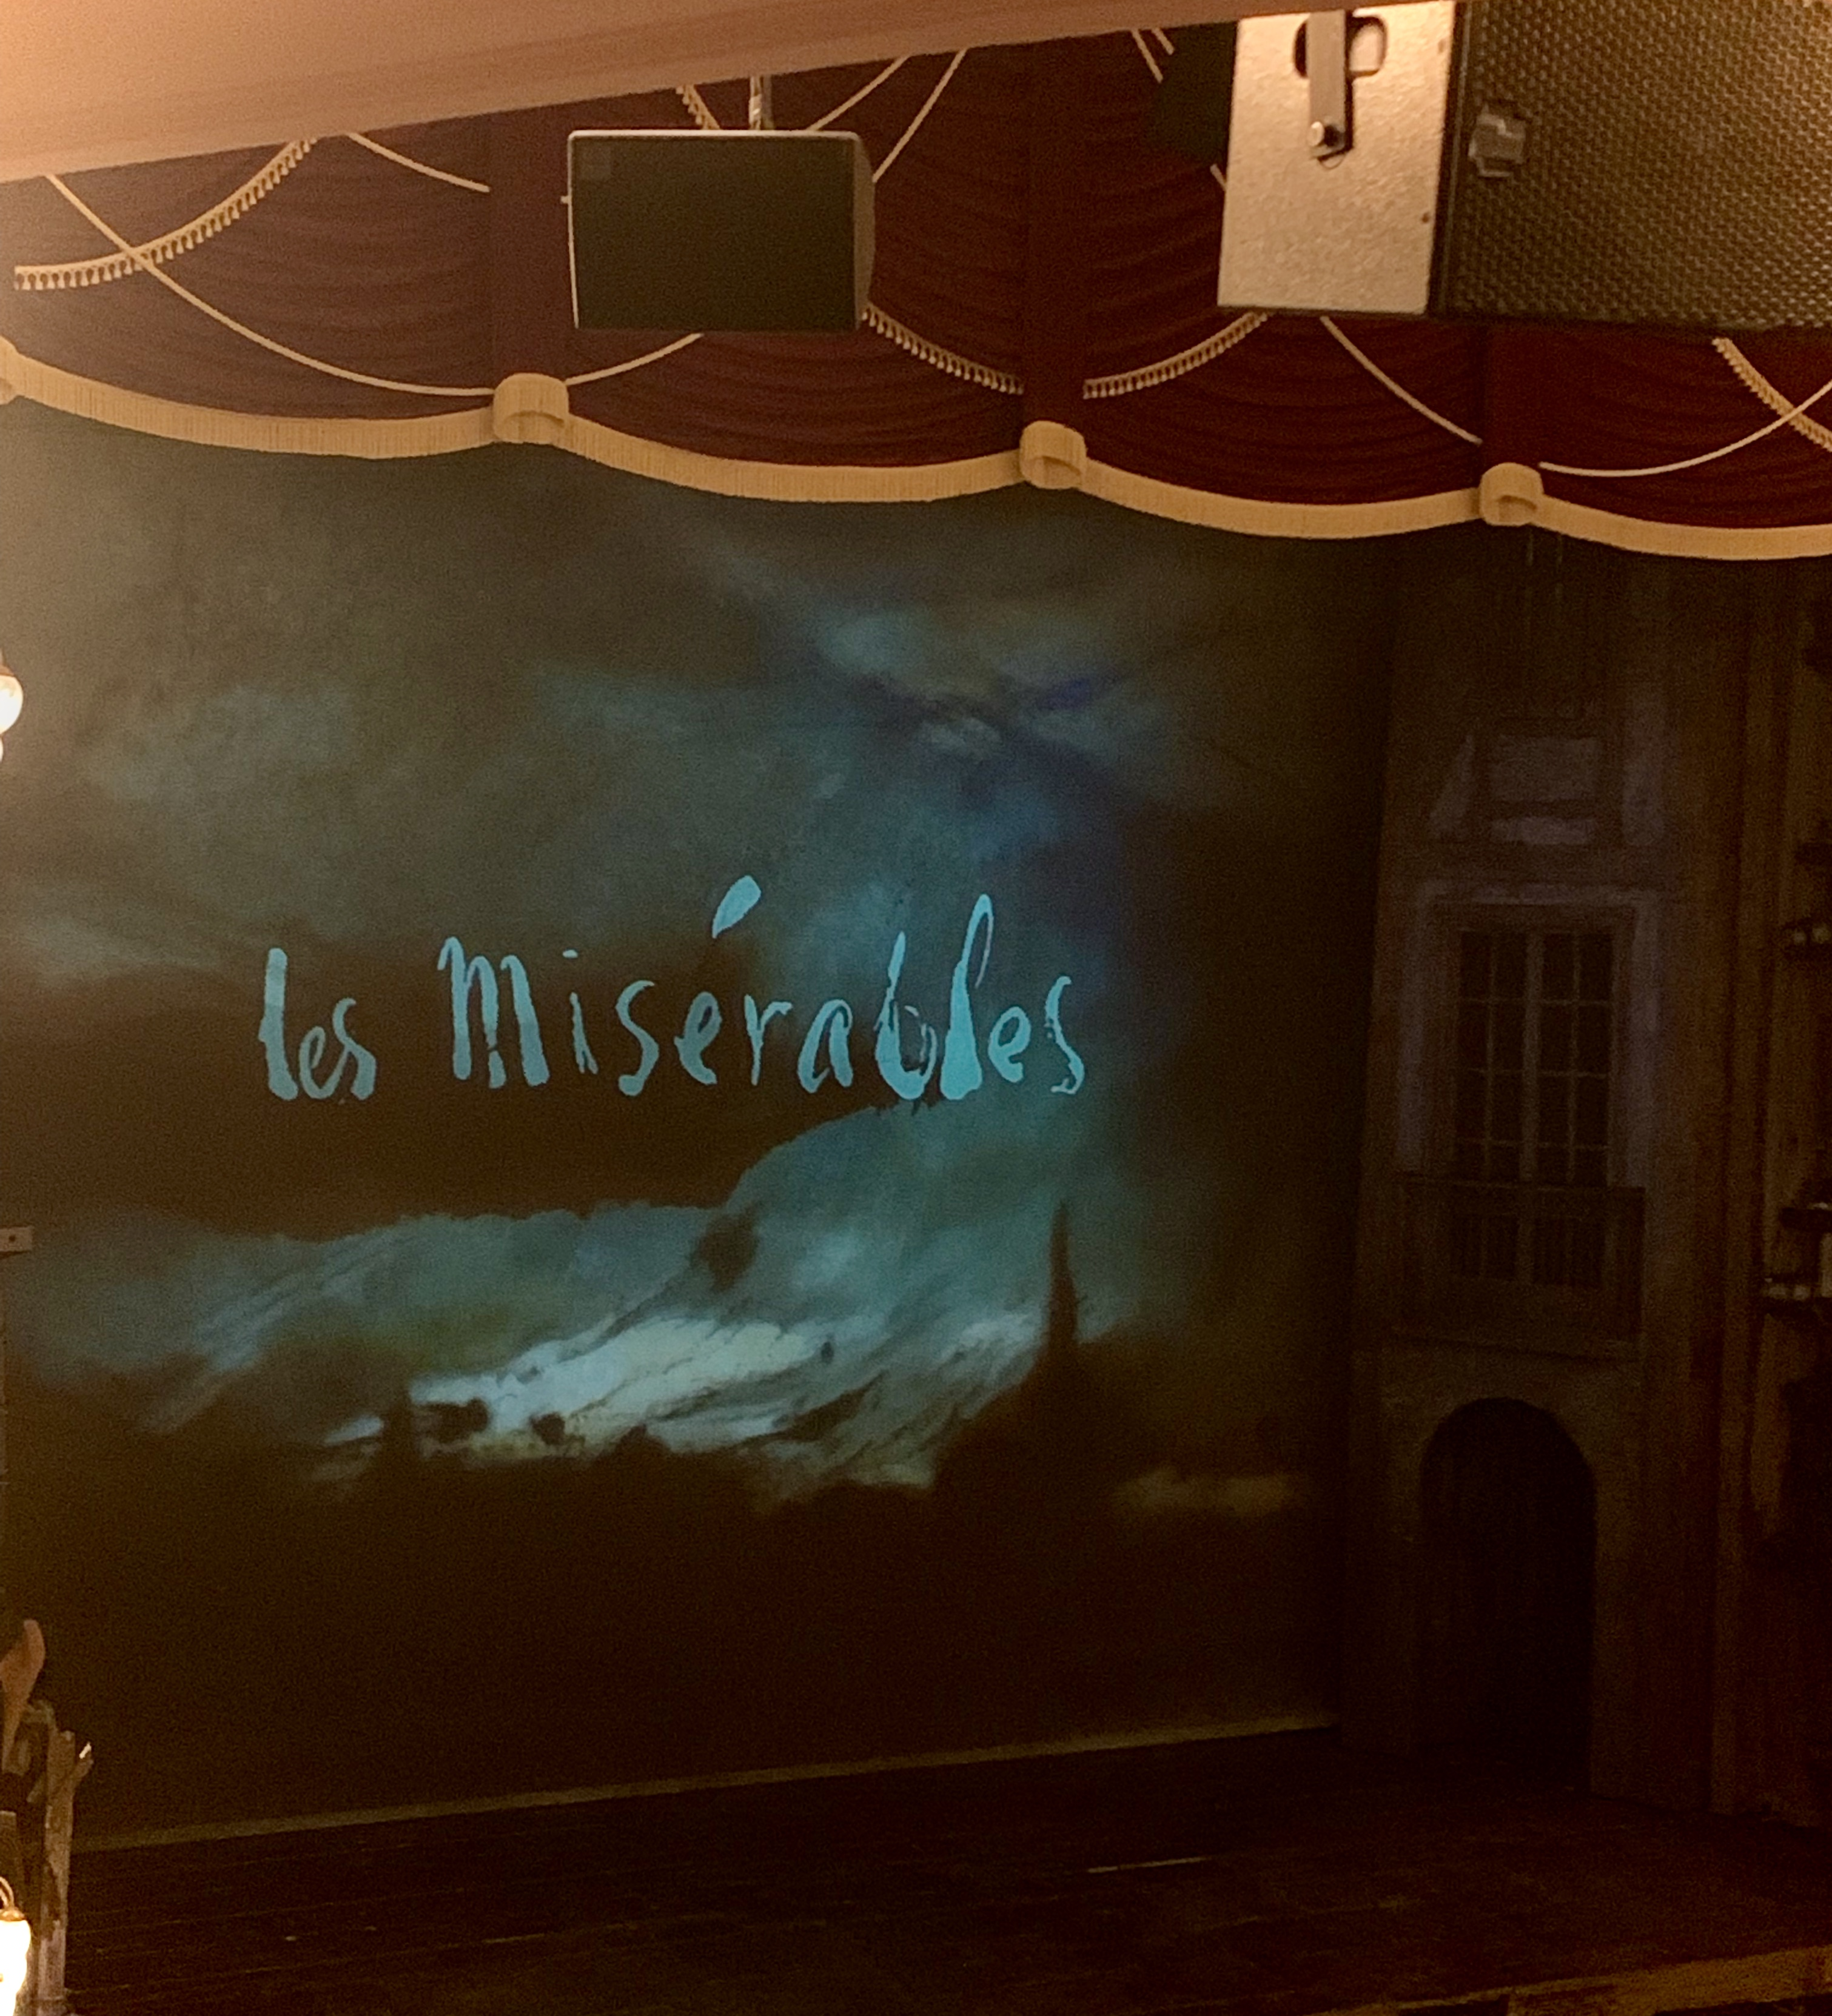 Les Miserables Review - Newcastle Theatre Royal. Image of the stage at the Theatre Royal with a curtain hanging showing the title 'Les Miserables'. The red curtain is raised ready for the performance.